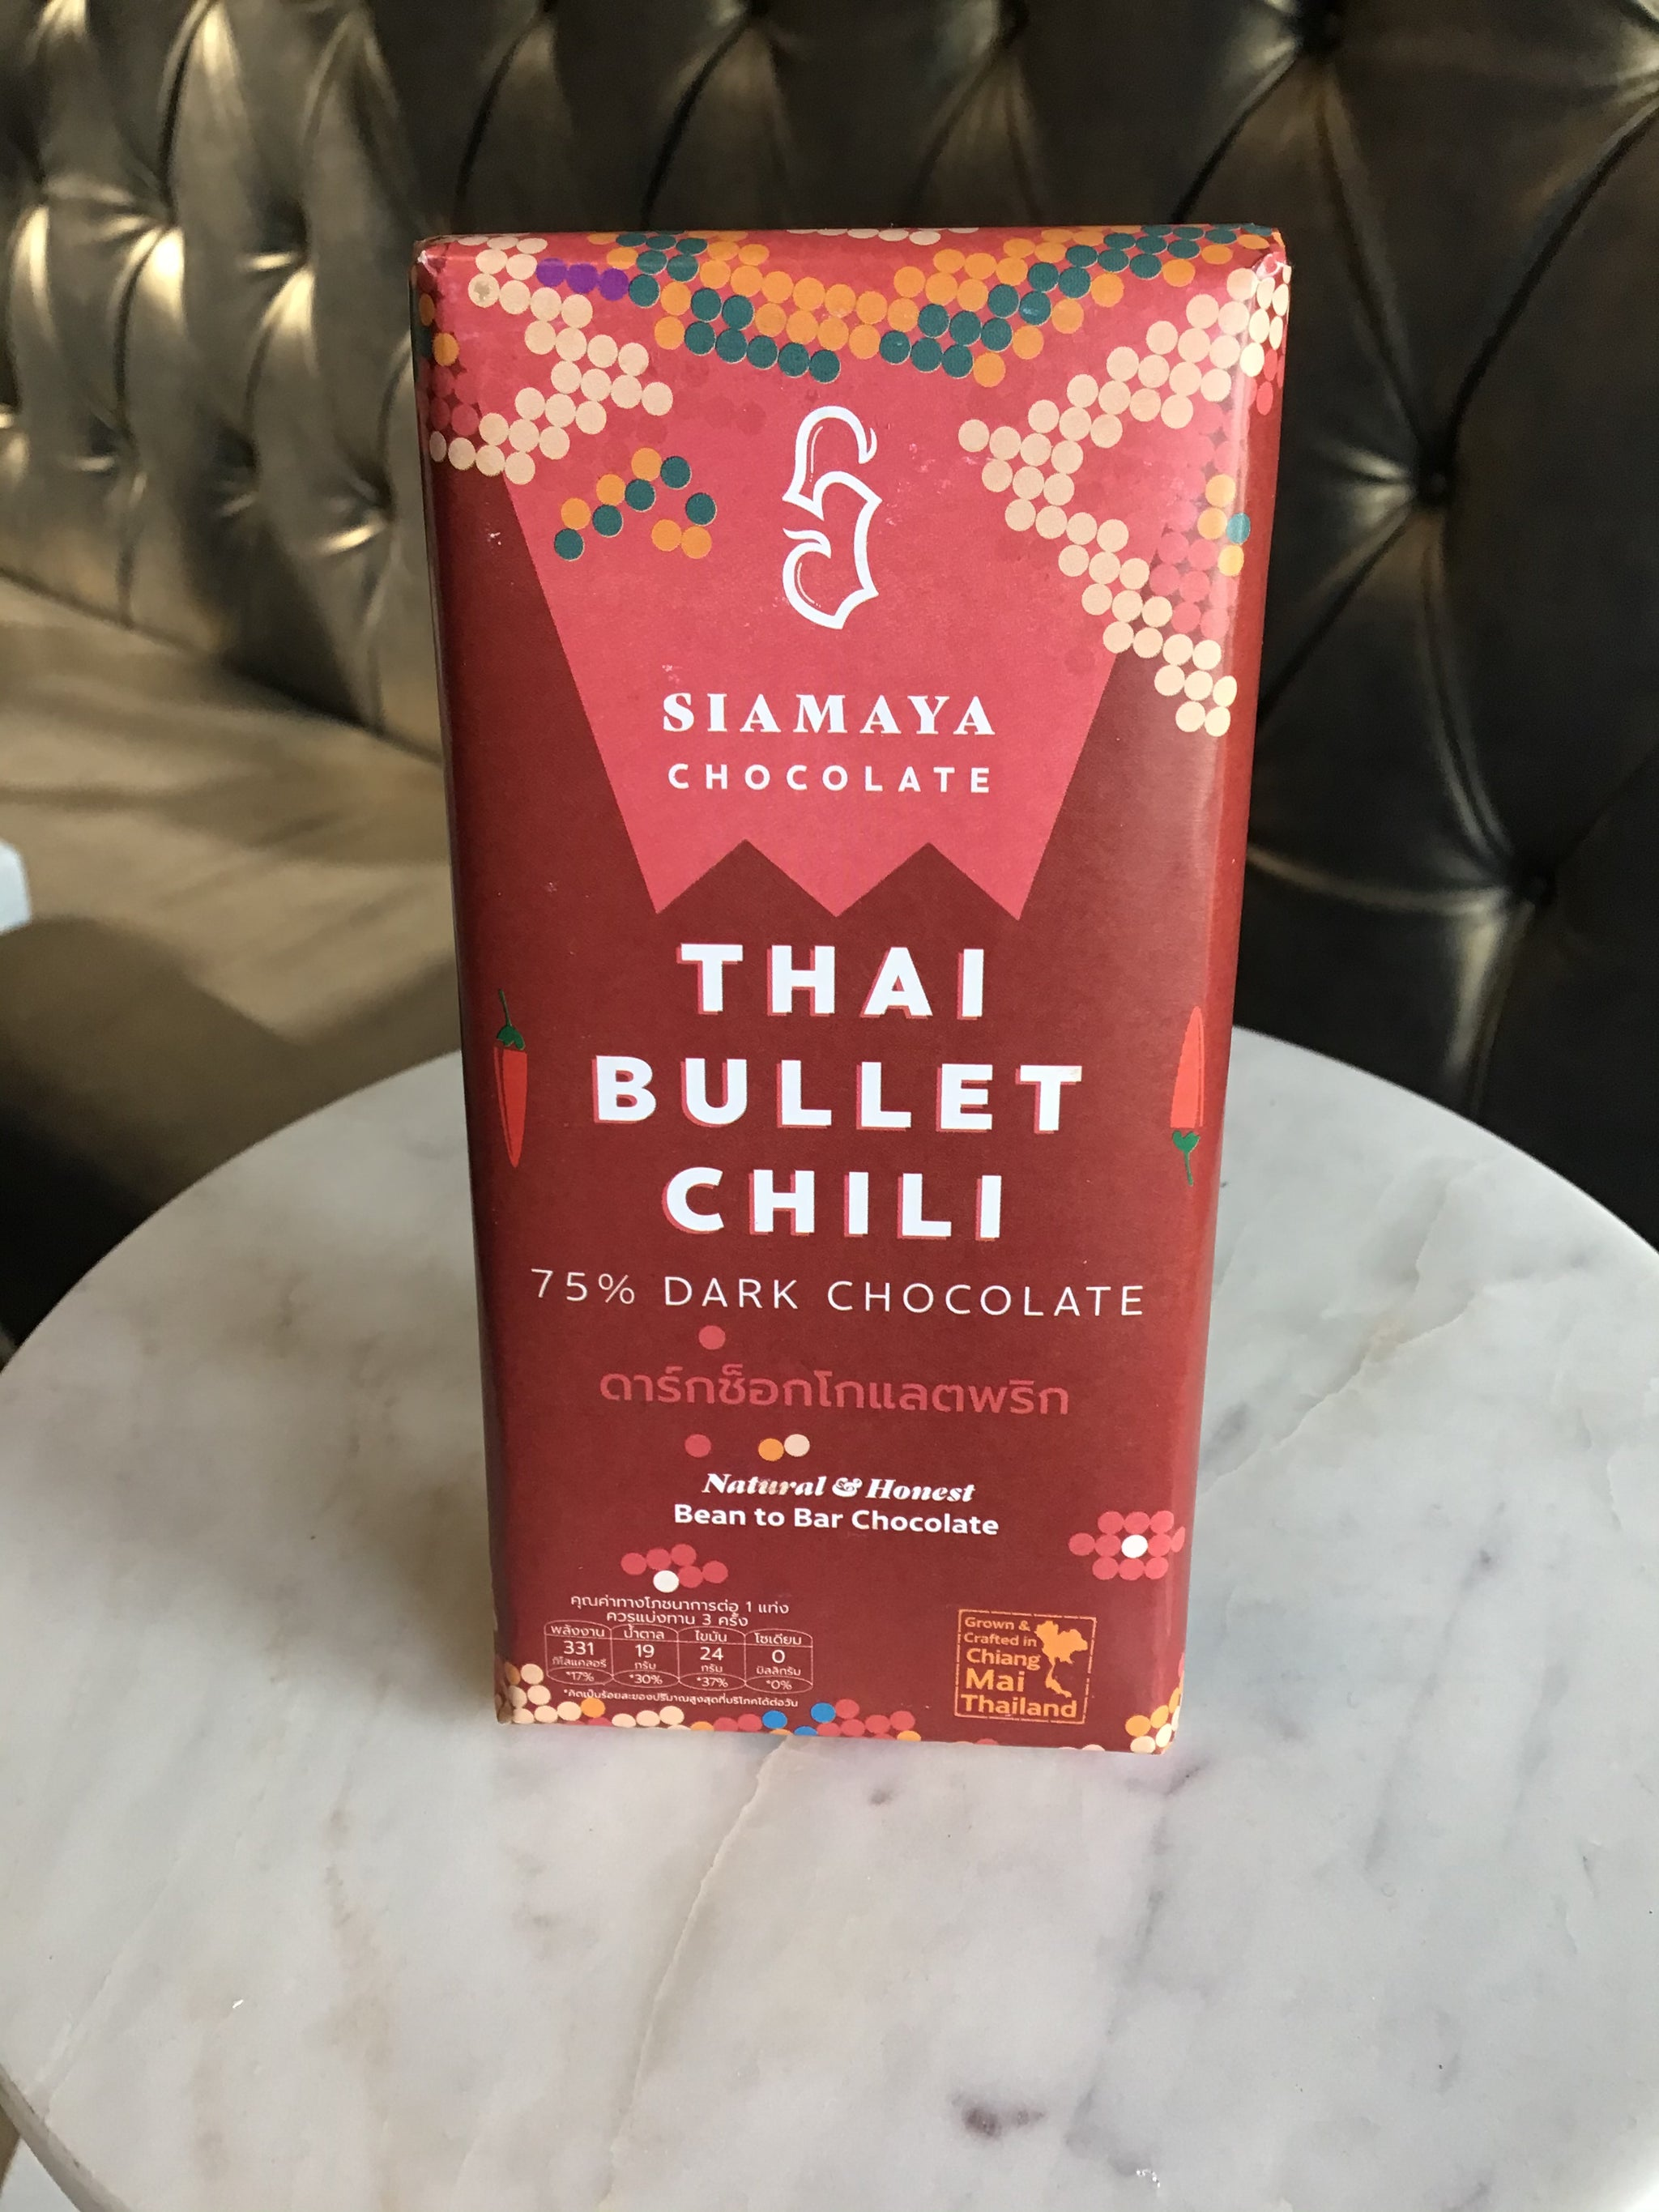 Siamaya - Thai Bullet Chili